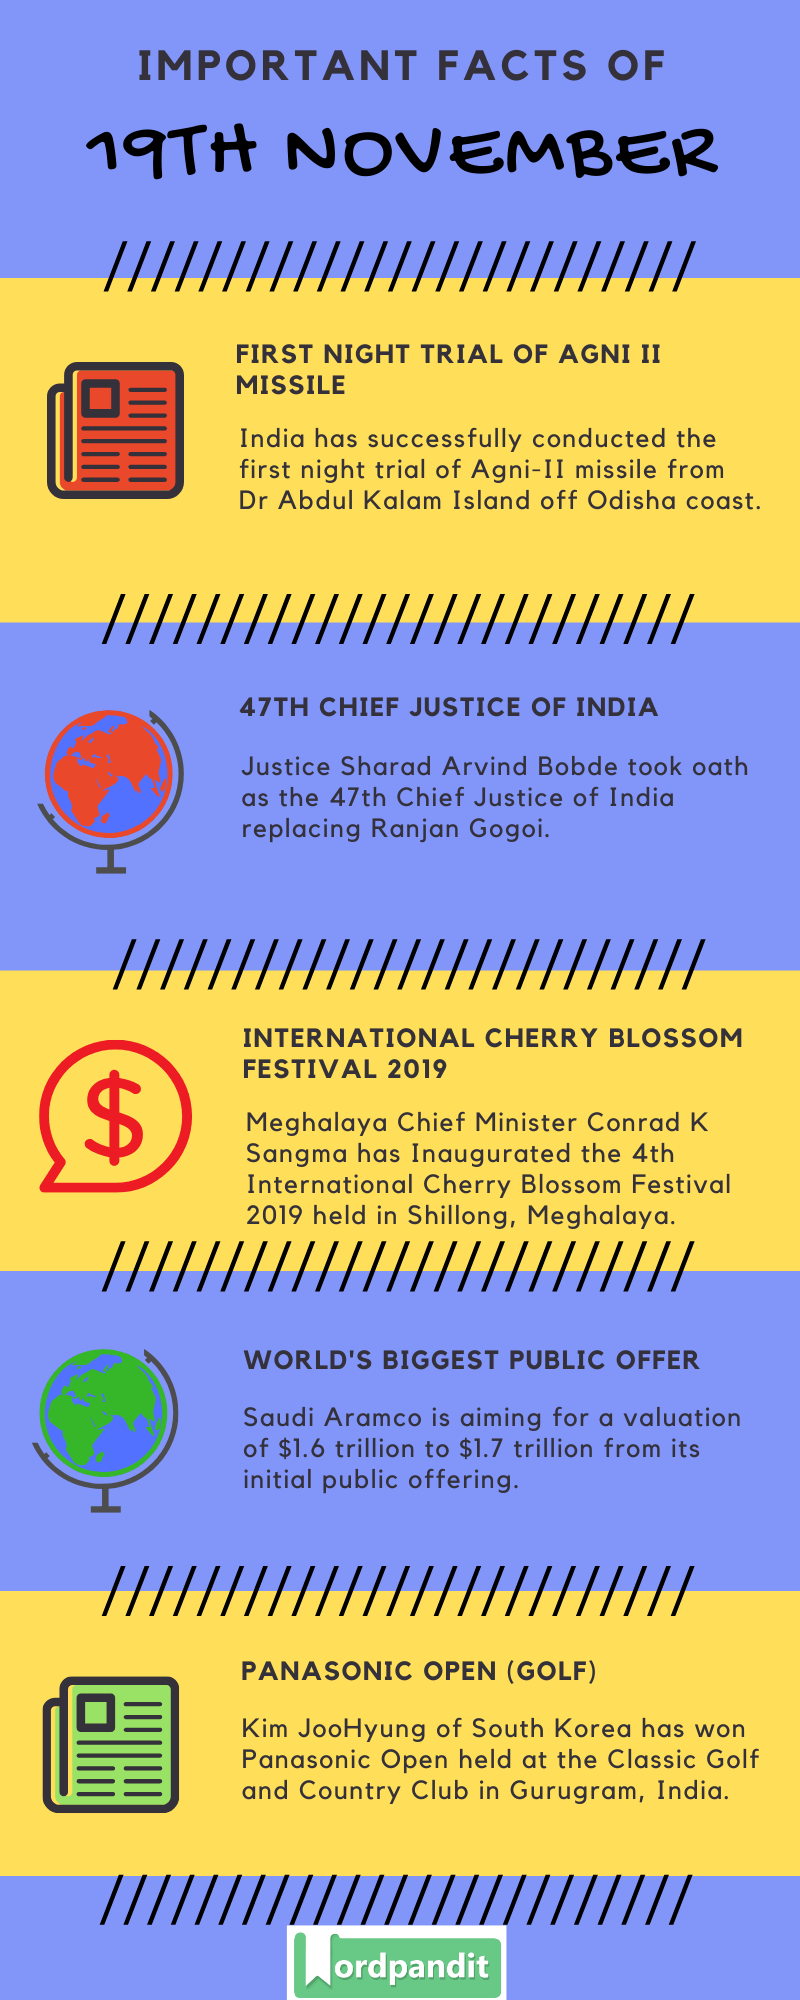 Daily Current Affairs 19 November 2019 Current Affairs Quiz 19 November 2019 Current Affairs Infographic